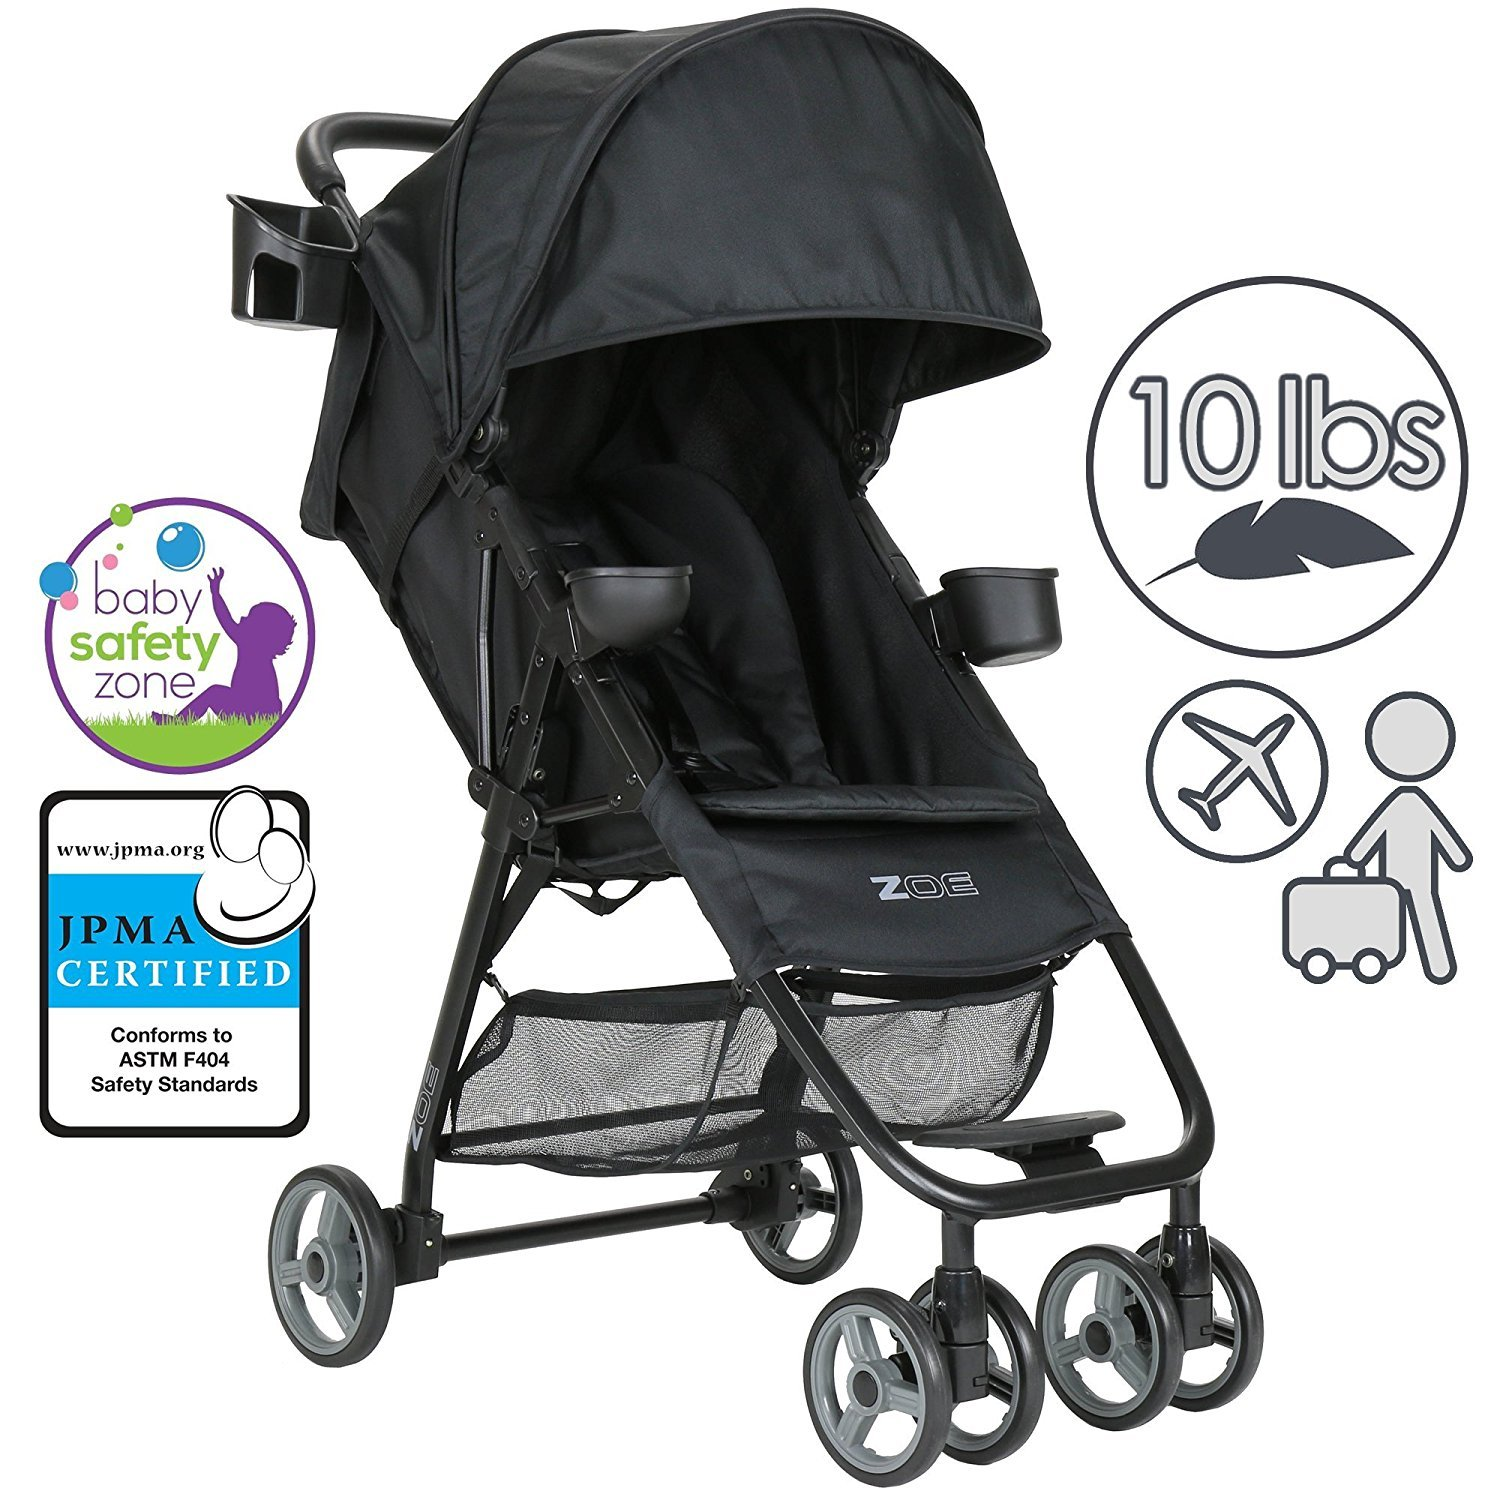 reclining stroller umbrella  sc 1 st  The Smartest Buyer & Top 3 Reclining Umbrella Strollers of 2017 islam-shia.org